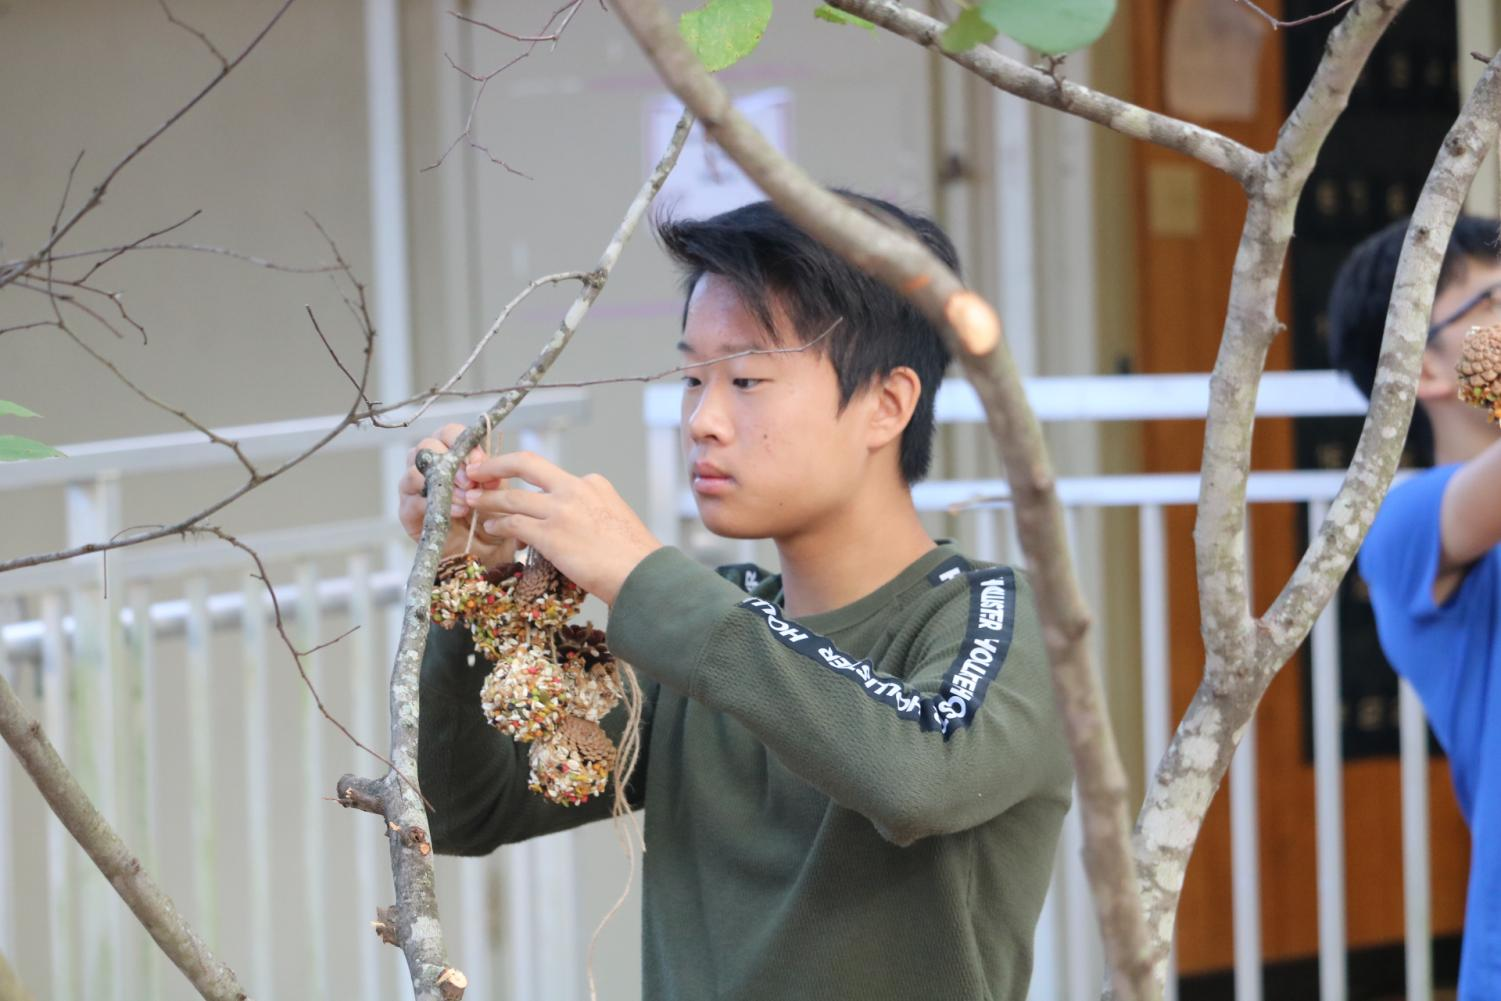 Justin+Gao+%2723+concentrates+as+he+hangs+his+first+bird+feeder+on+a+branch.+